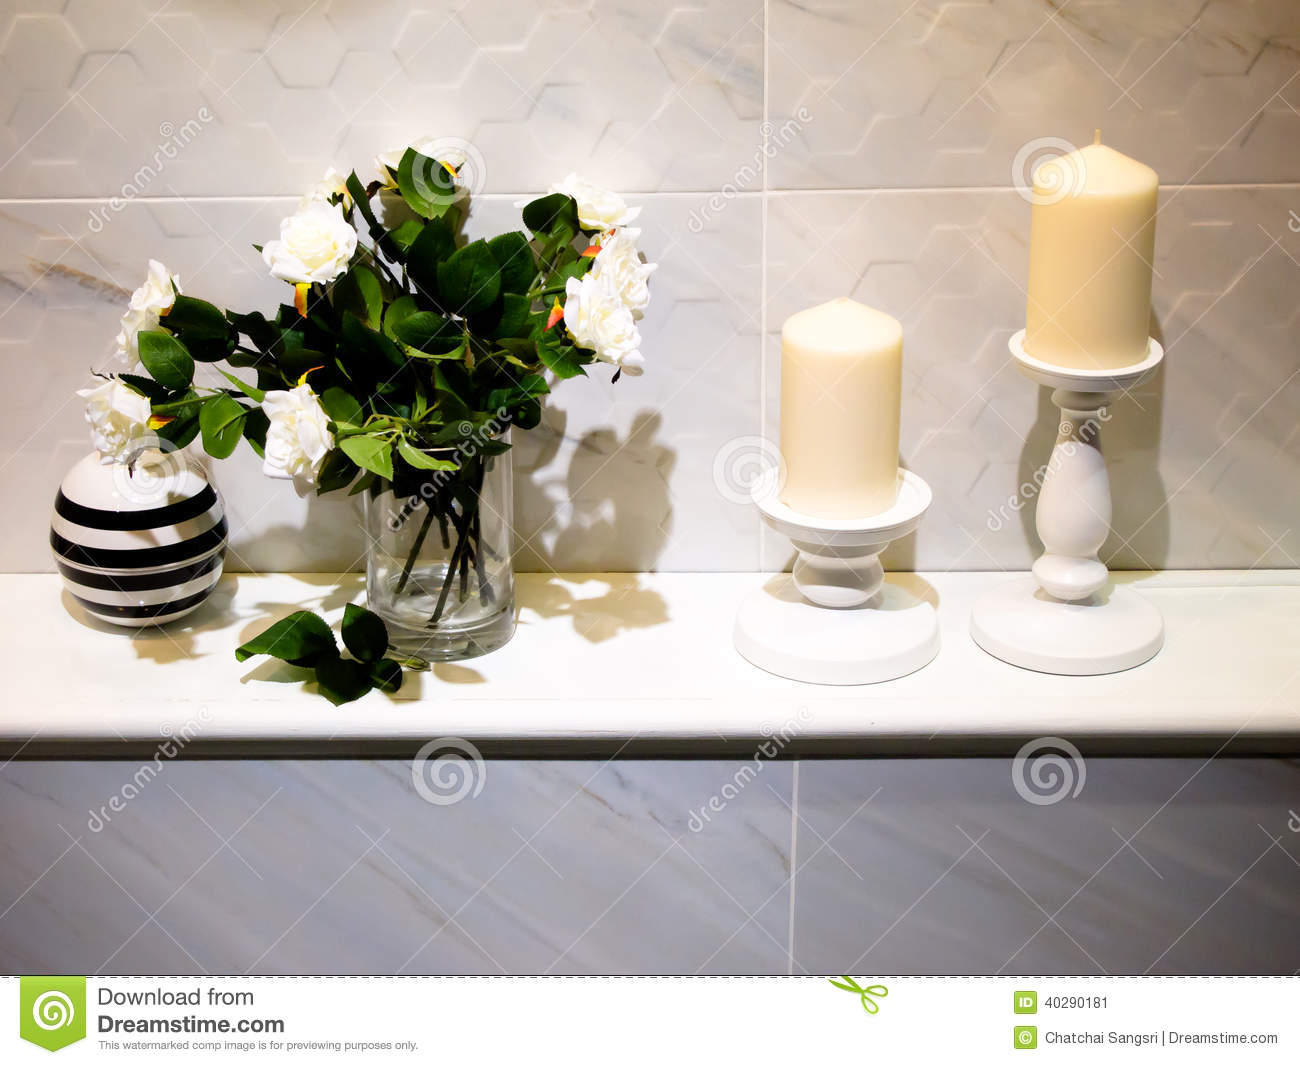 Bathroom decor stock image image of candle massage for Accessories decoration